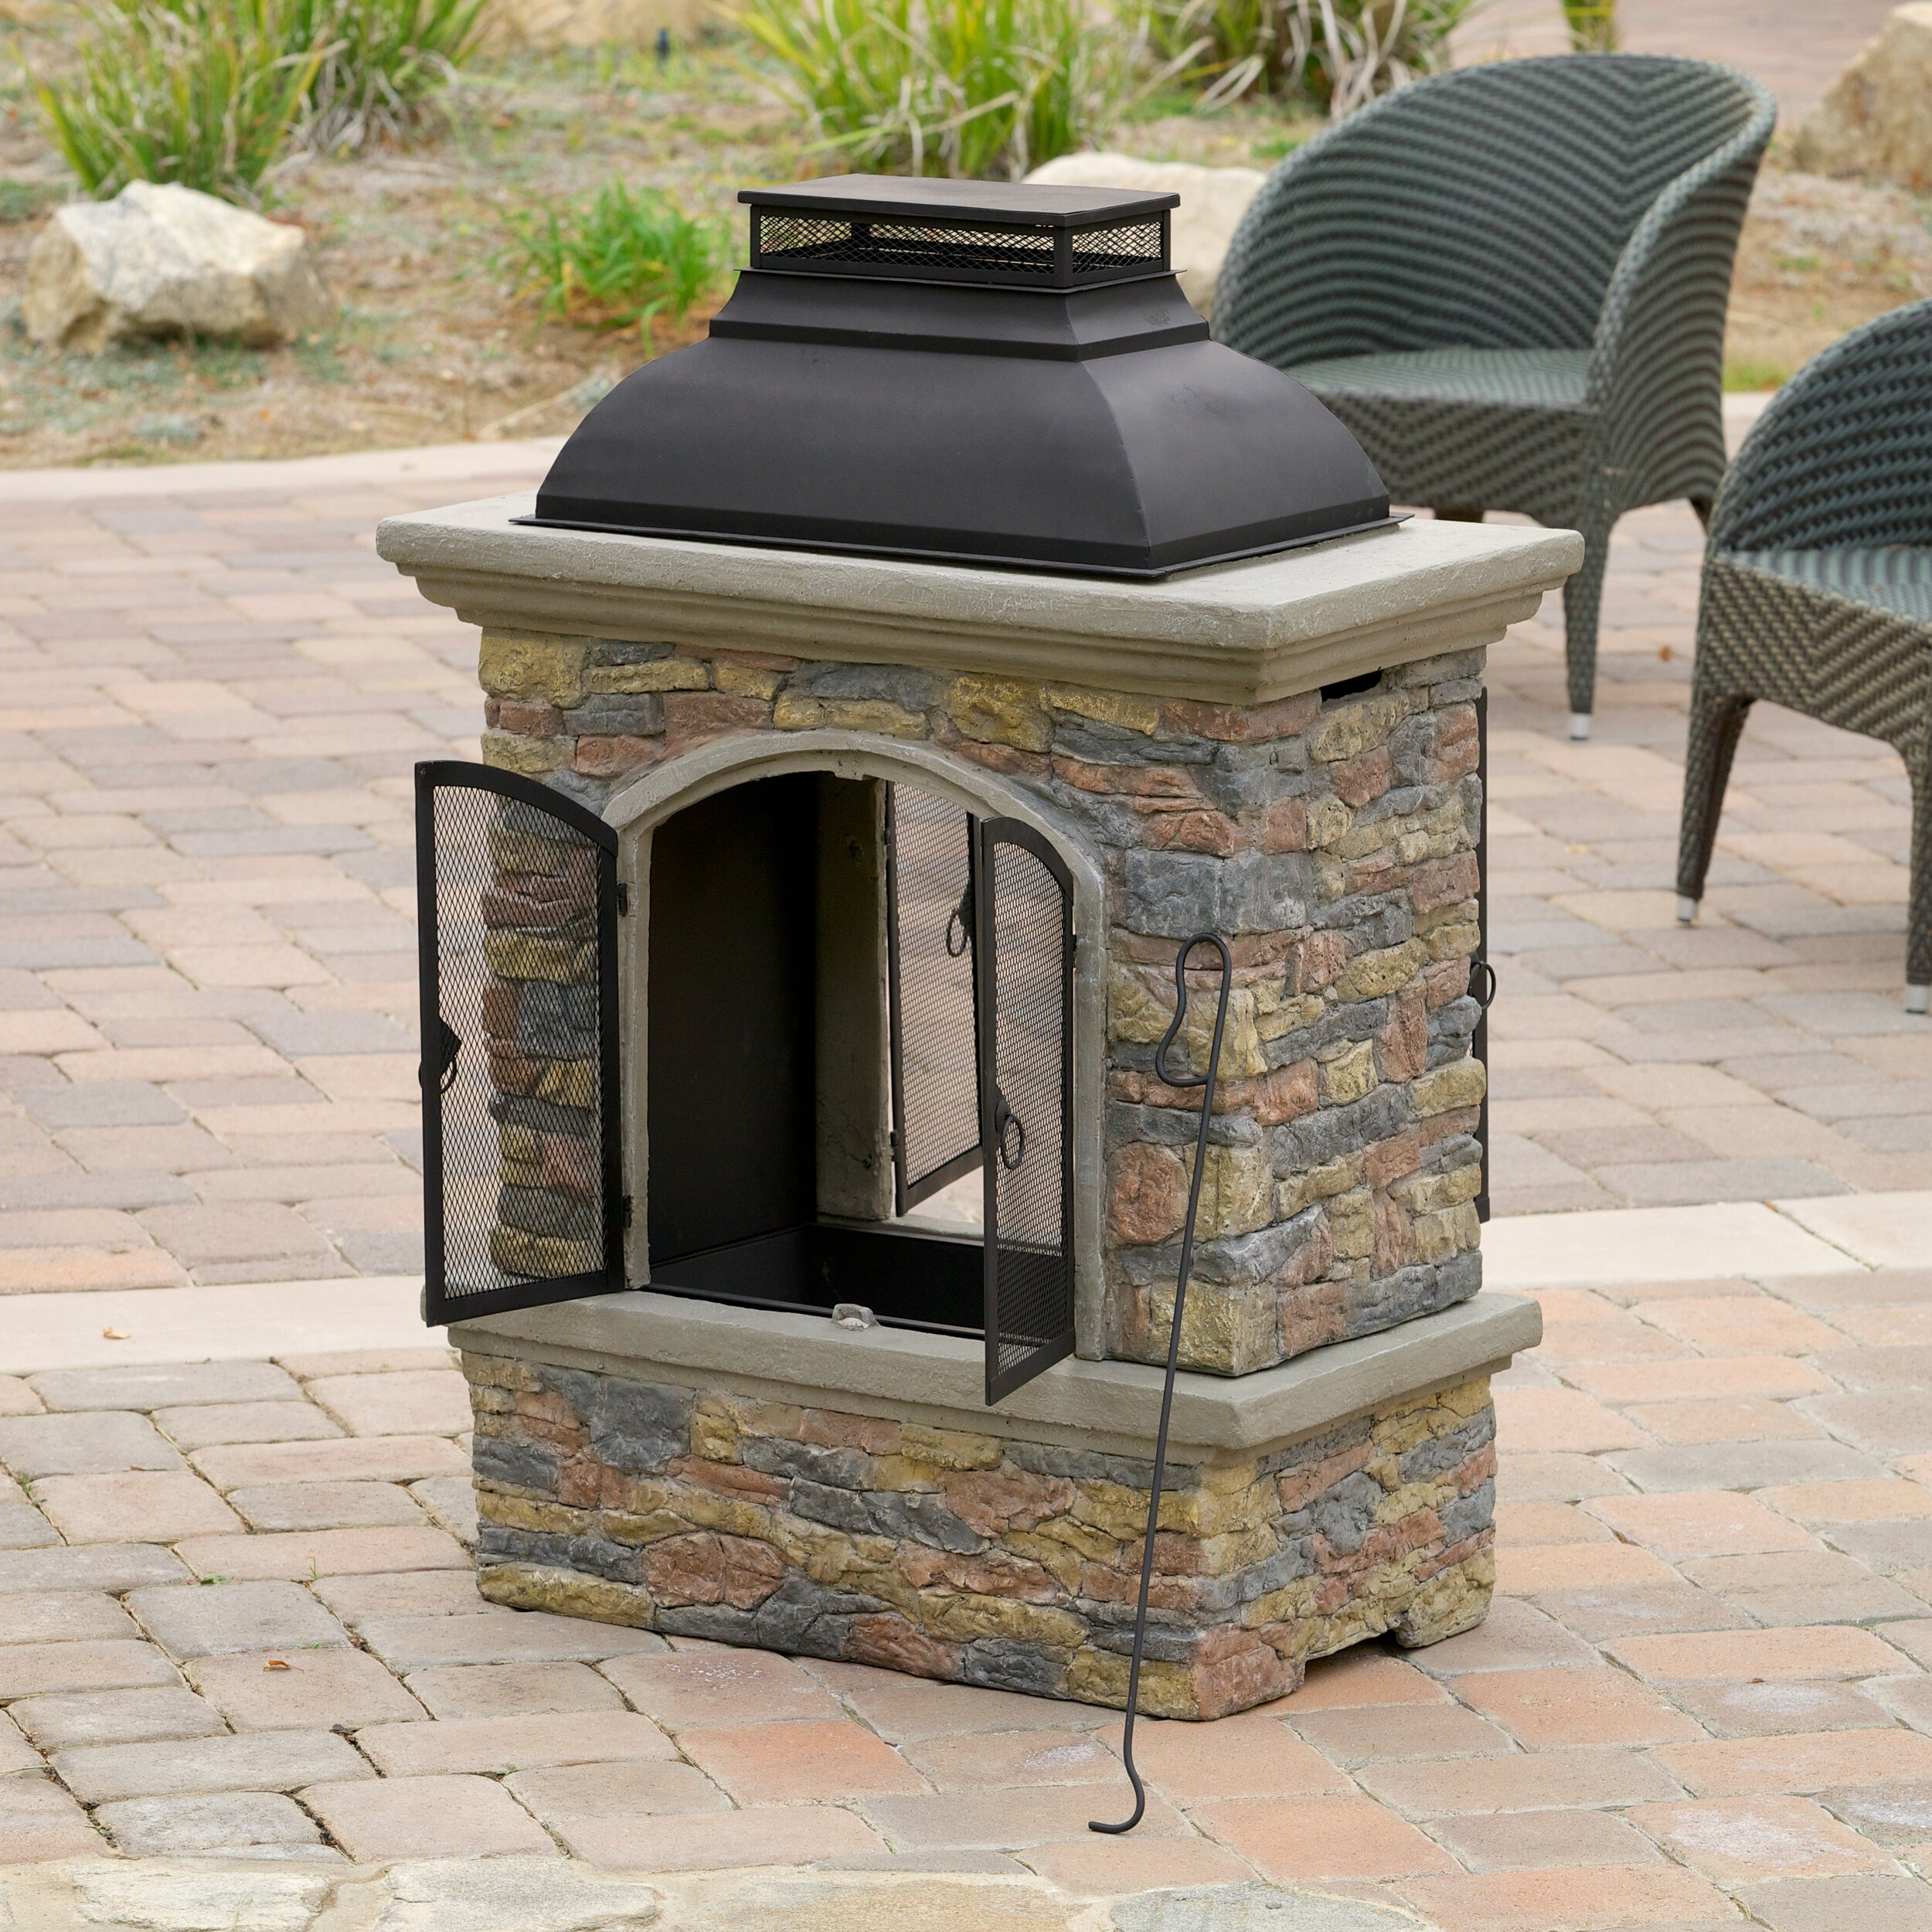 Fresno Outdoor Natural Stone Chiminea Fireplace